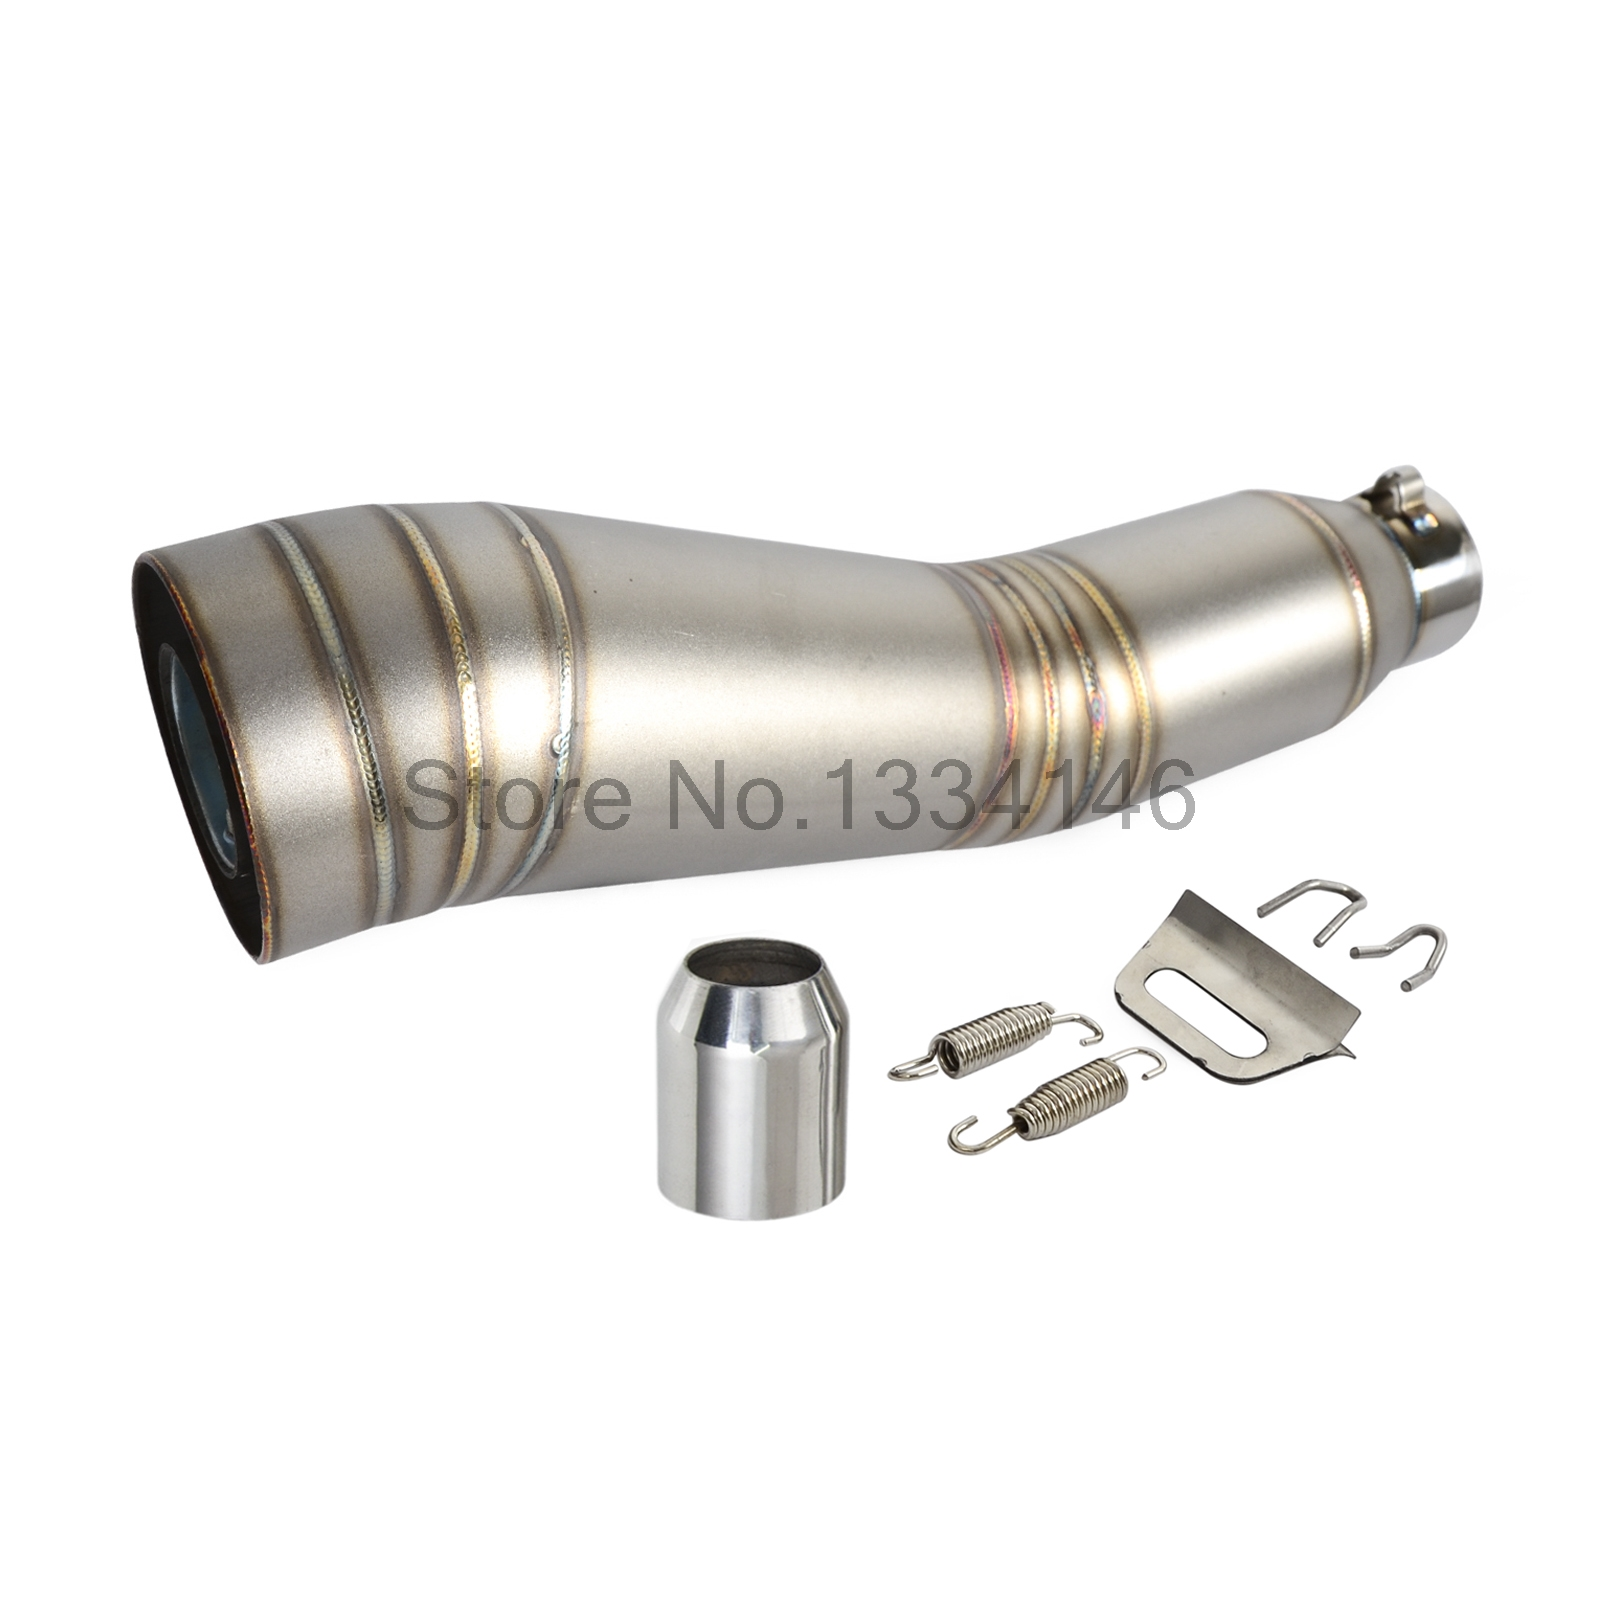 ФОТО Universal Motorcycle Stainless Steel GP Exhaust Muffler Pipe Slip-On 51mm With Removeable DB Killer separated bracket